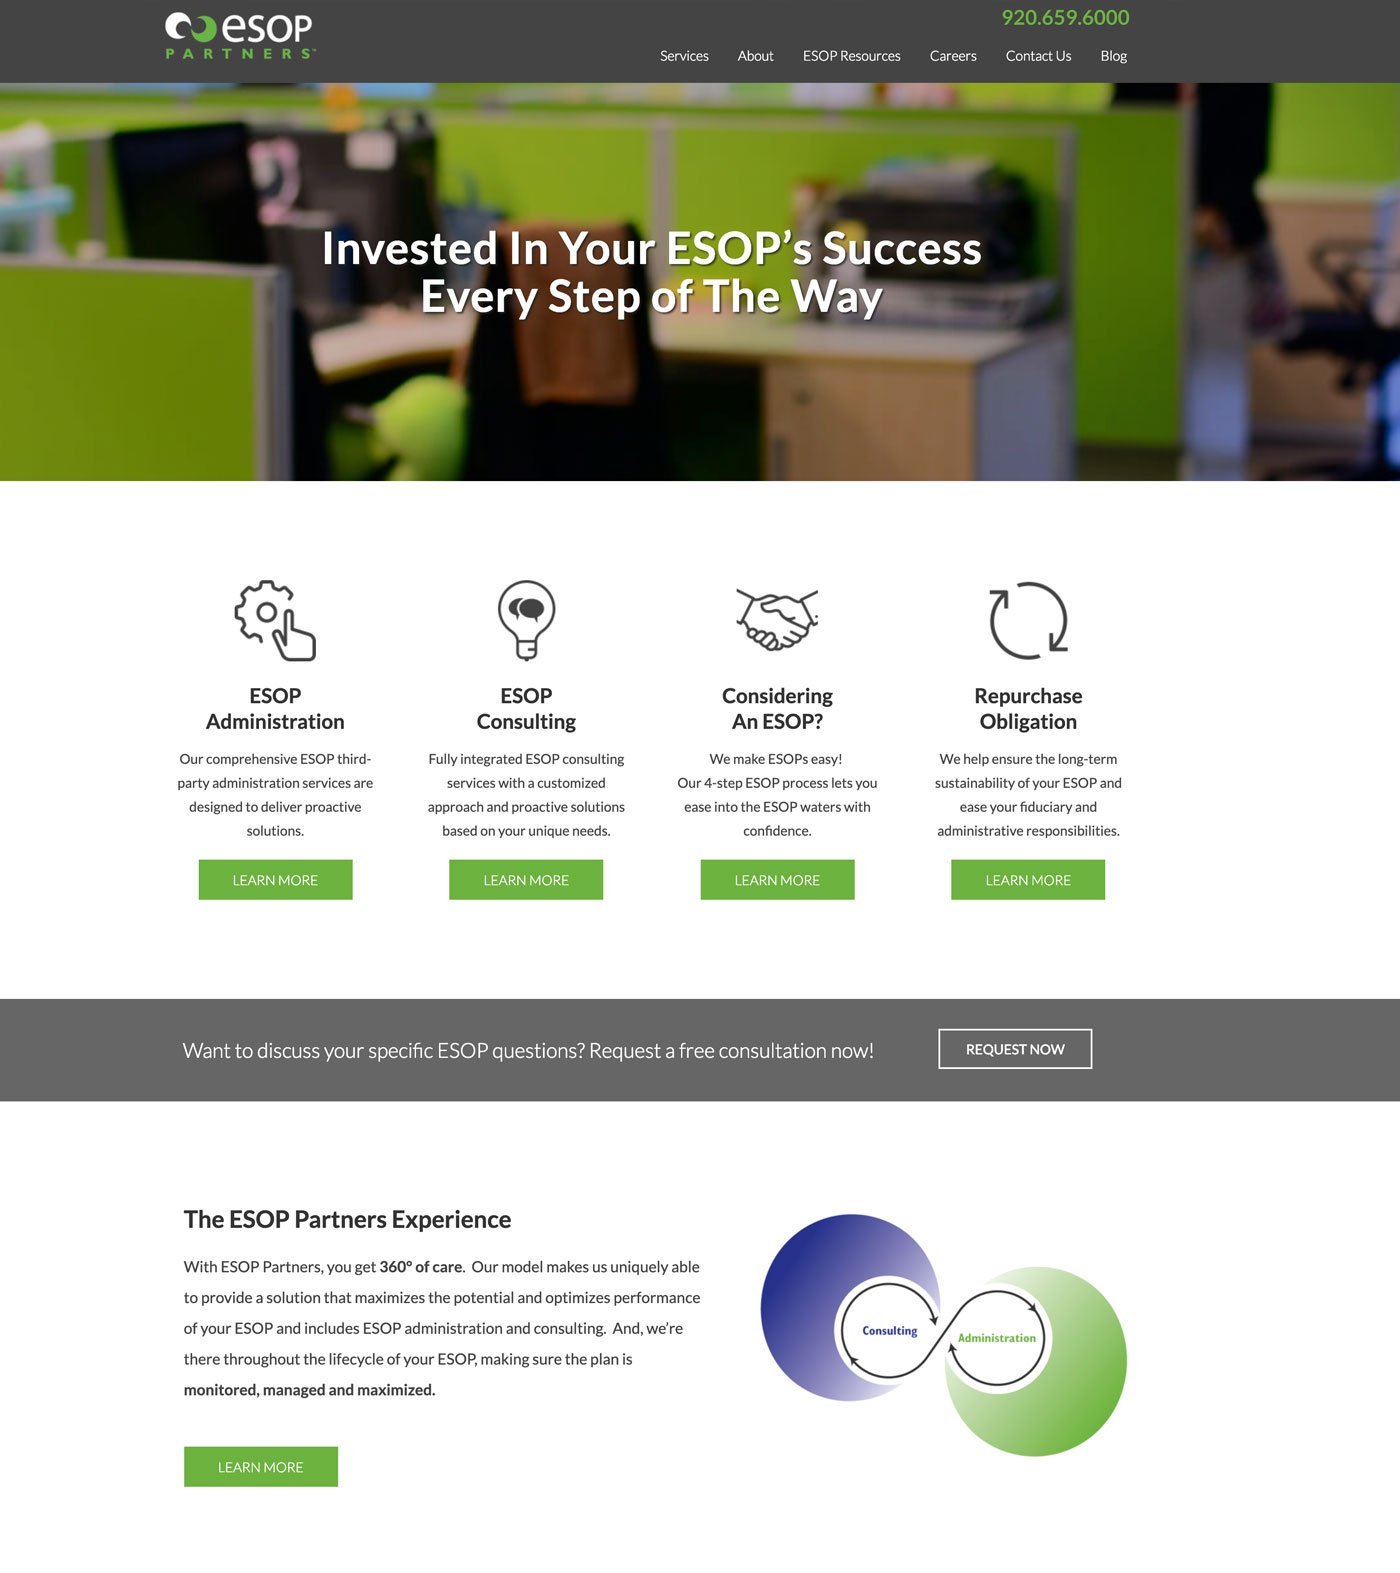 ESOP Partners home page